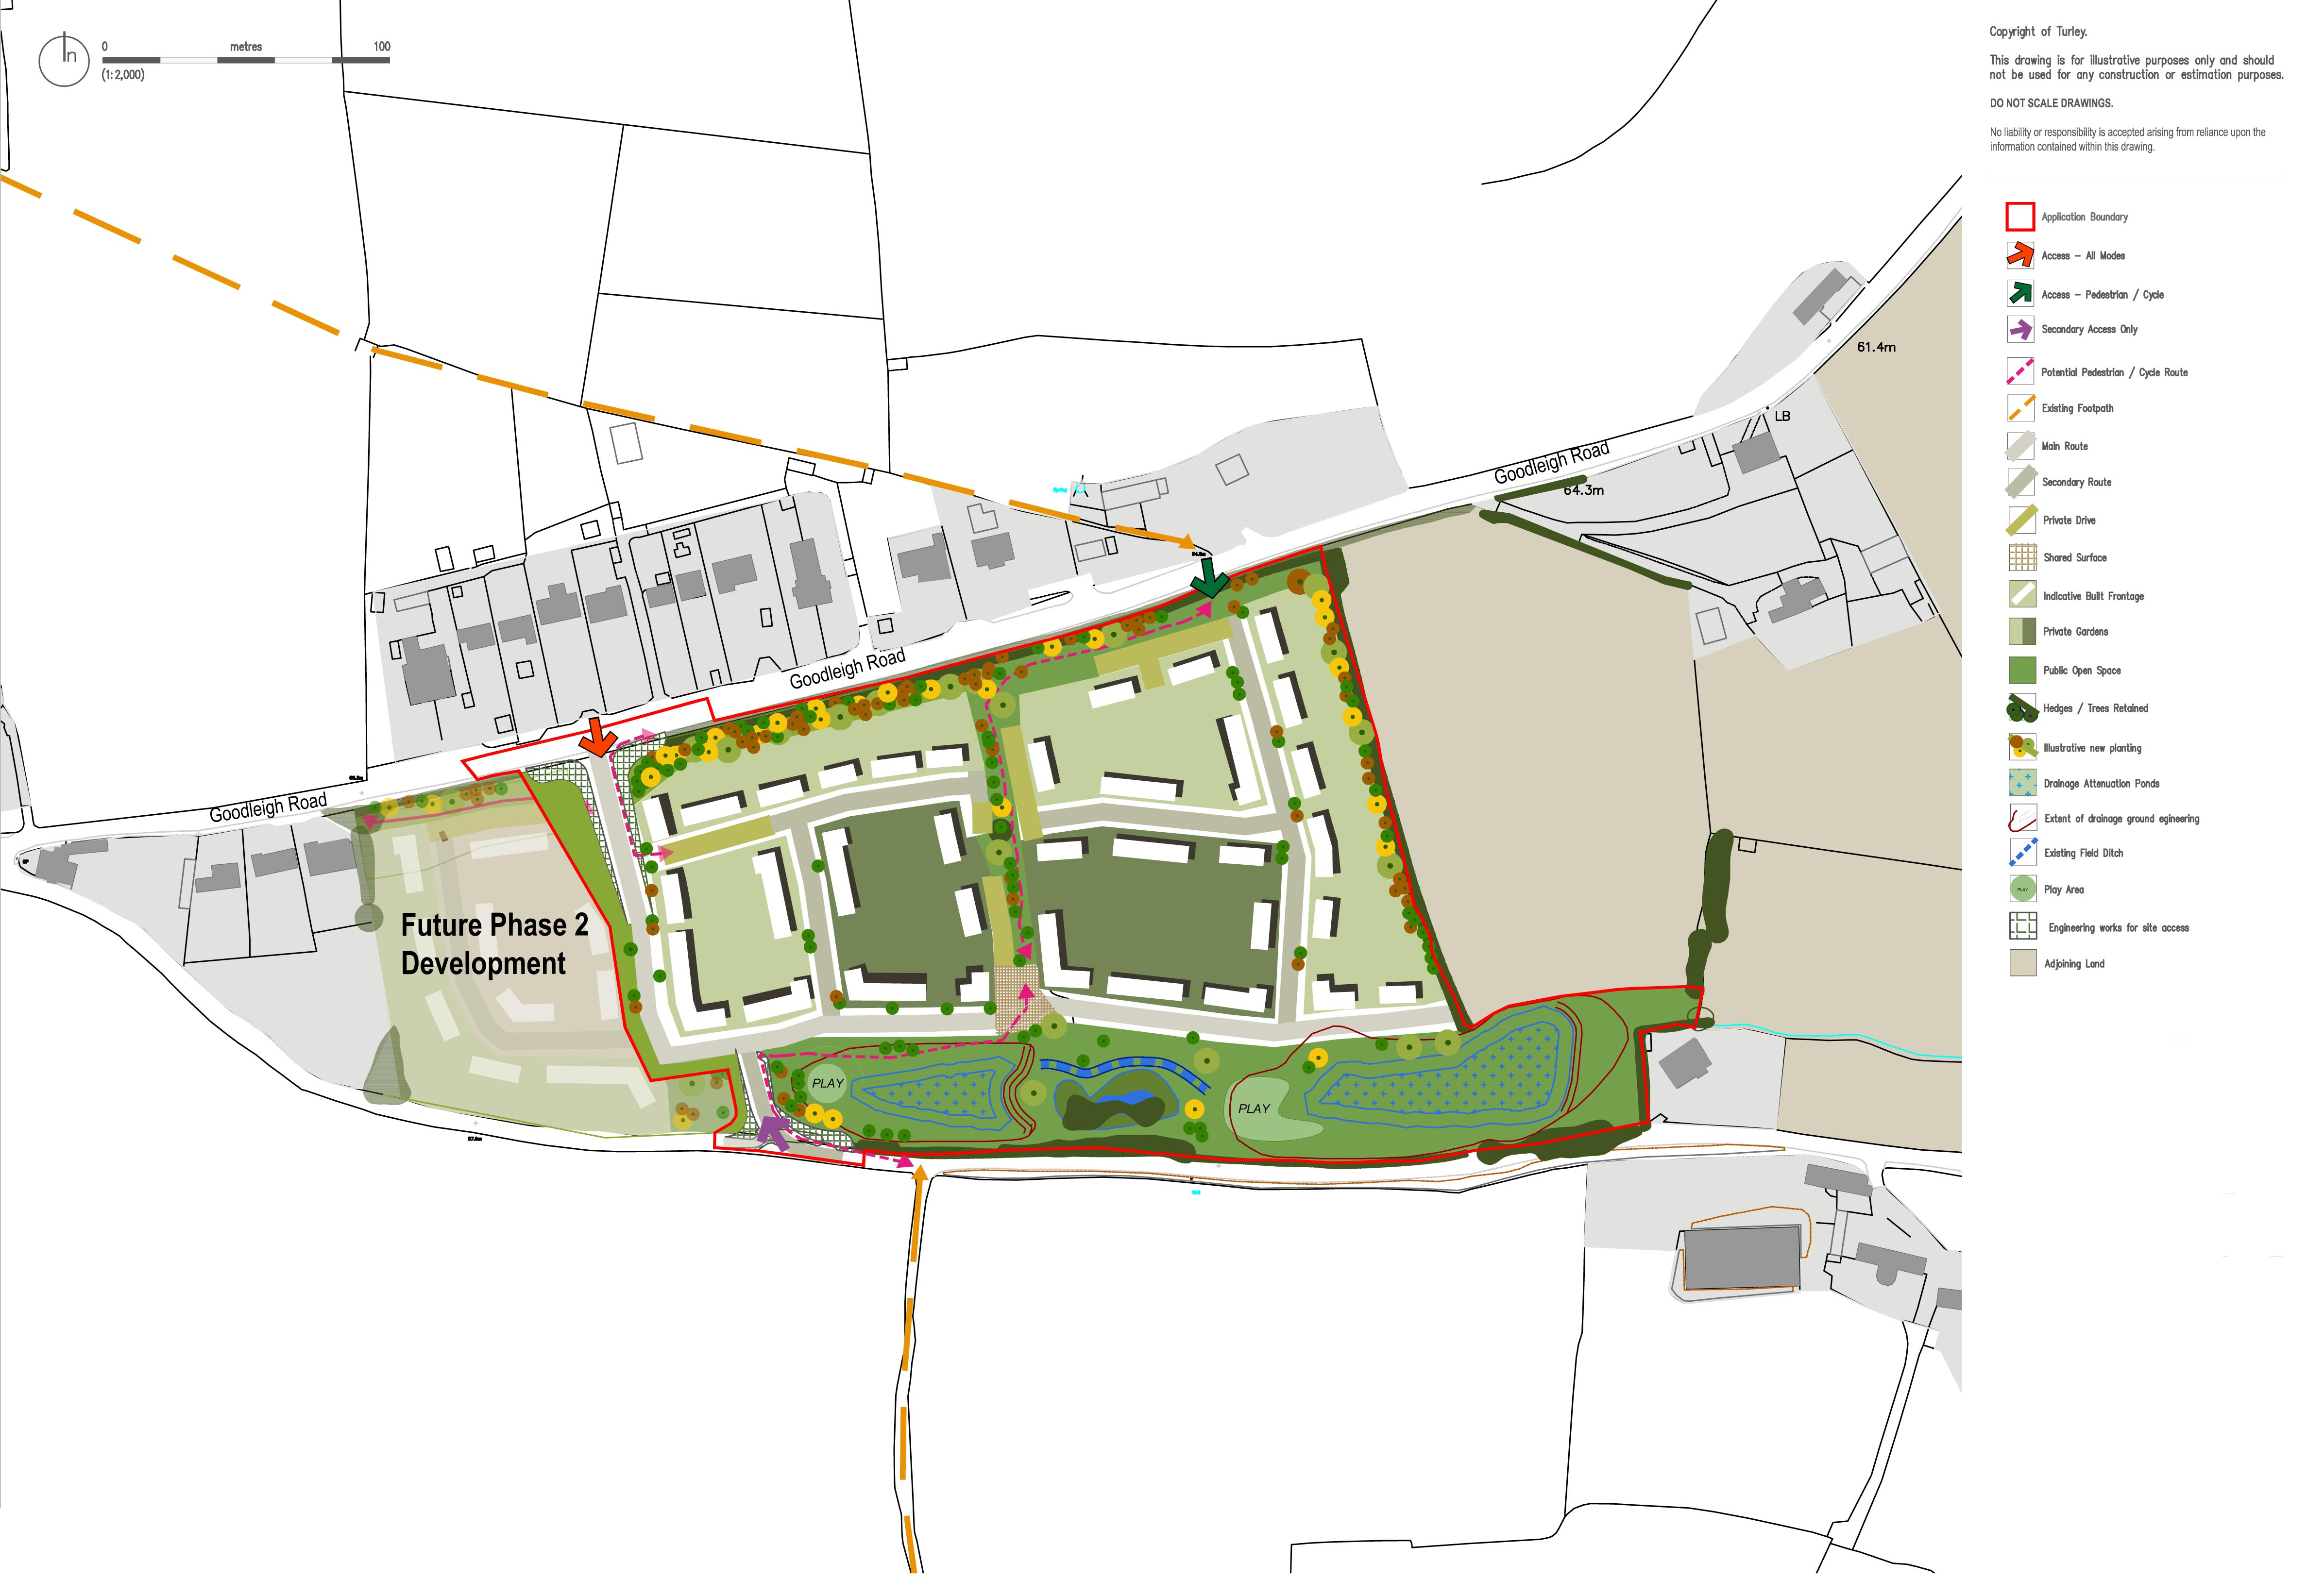 Goodleigh Road Concept Plan